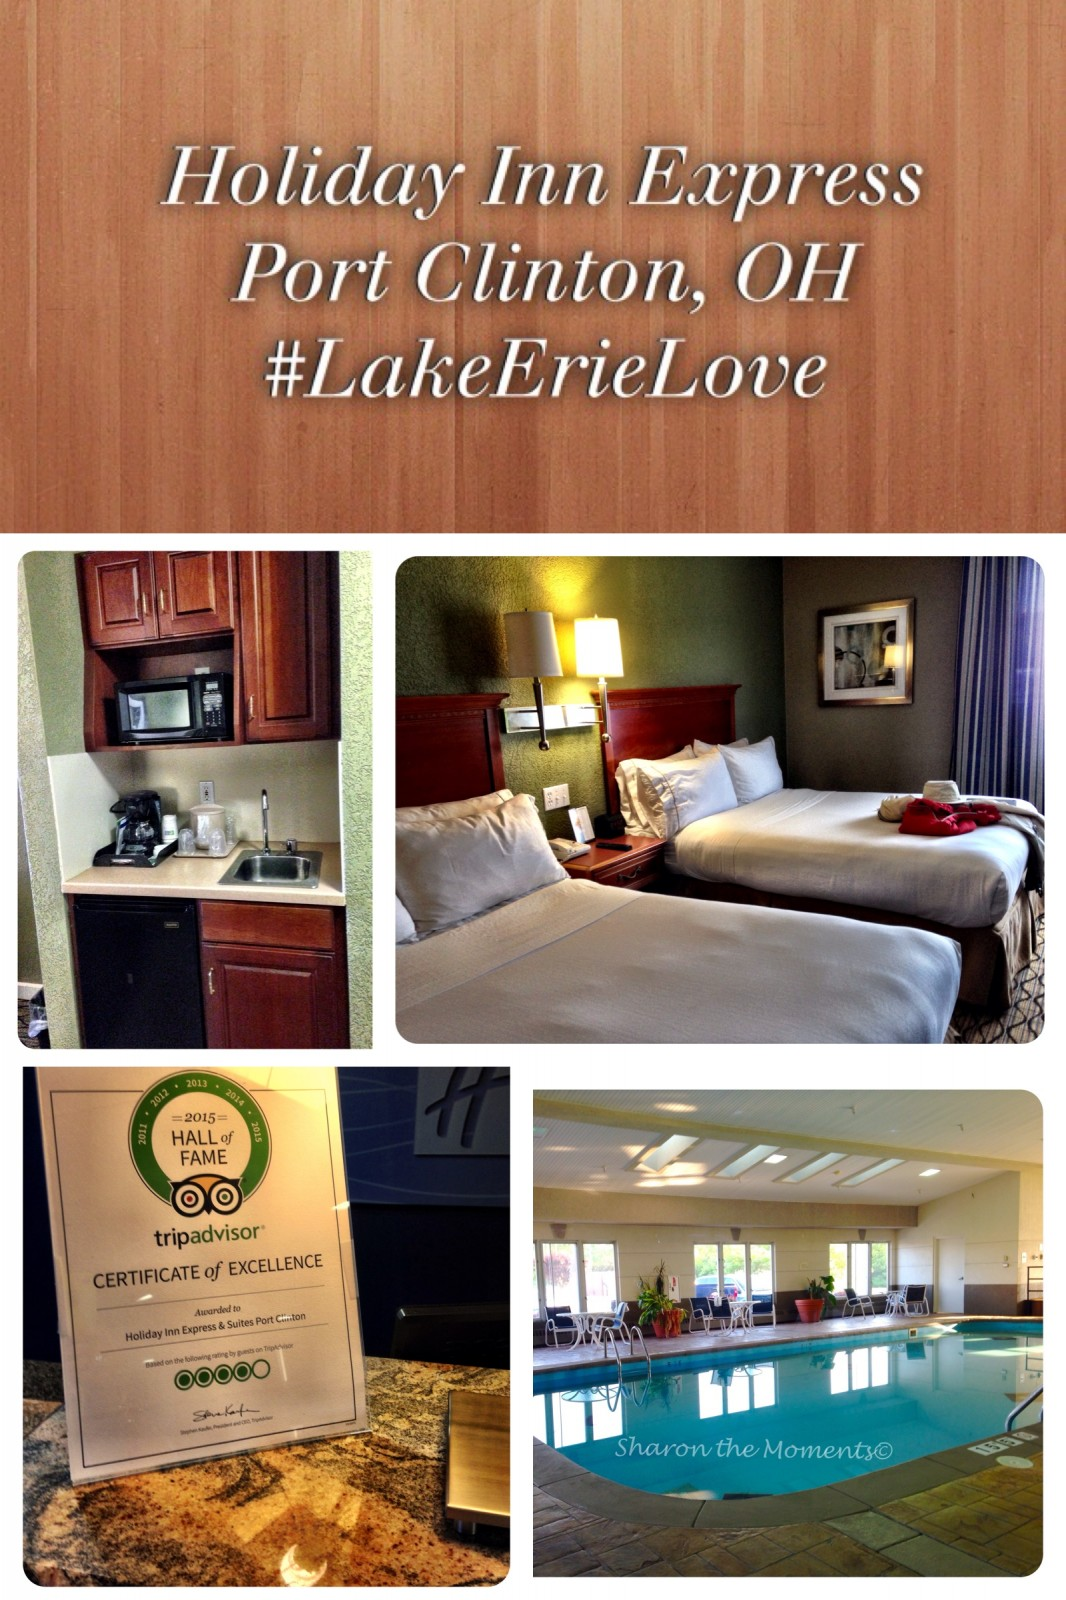 Holiday Inn Express & Suites Port Clinton Catawba Island OH| Sharon the Moments Blog